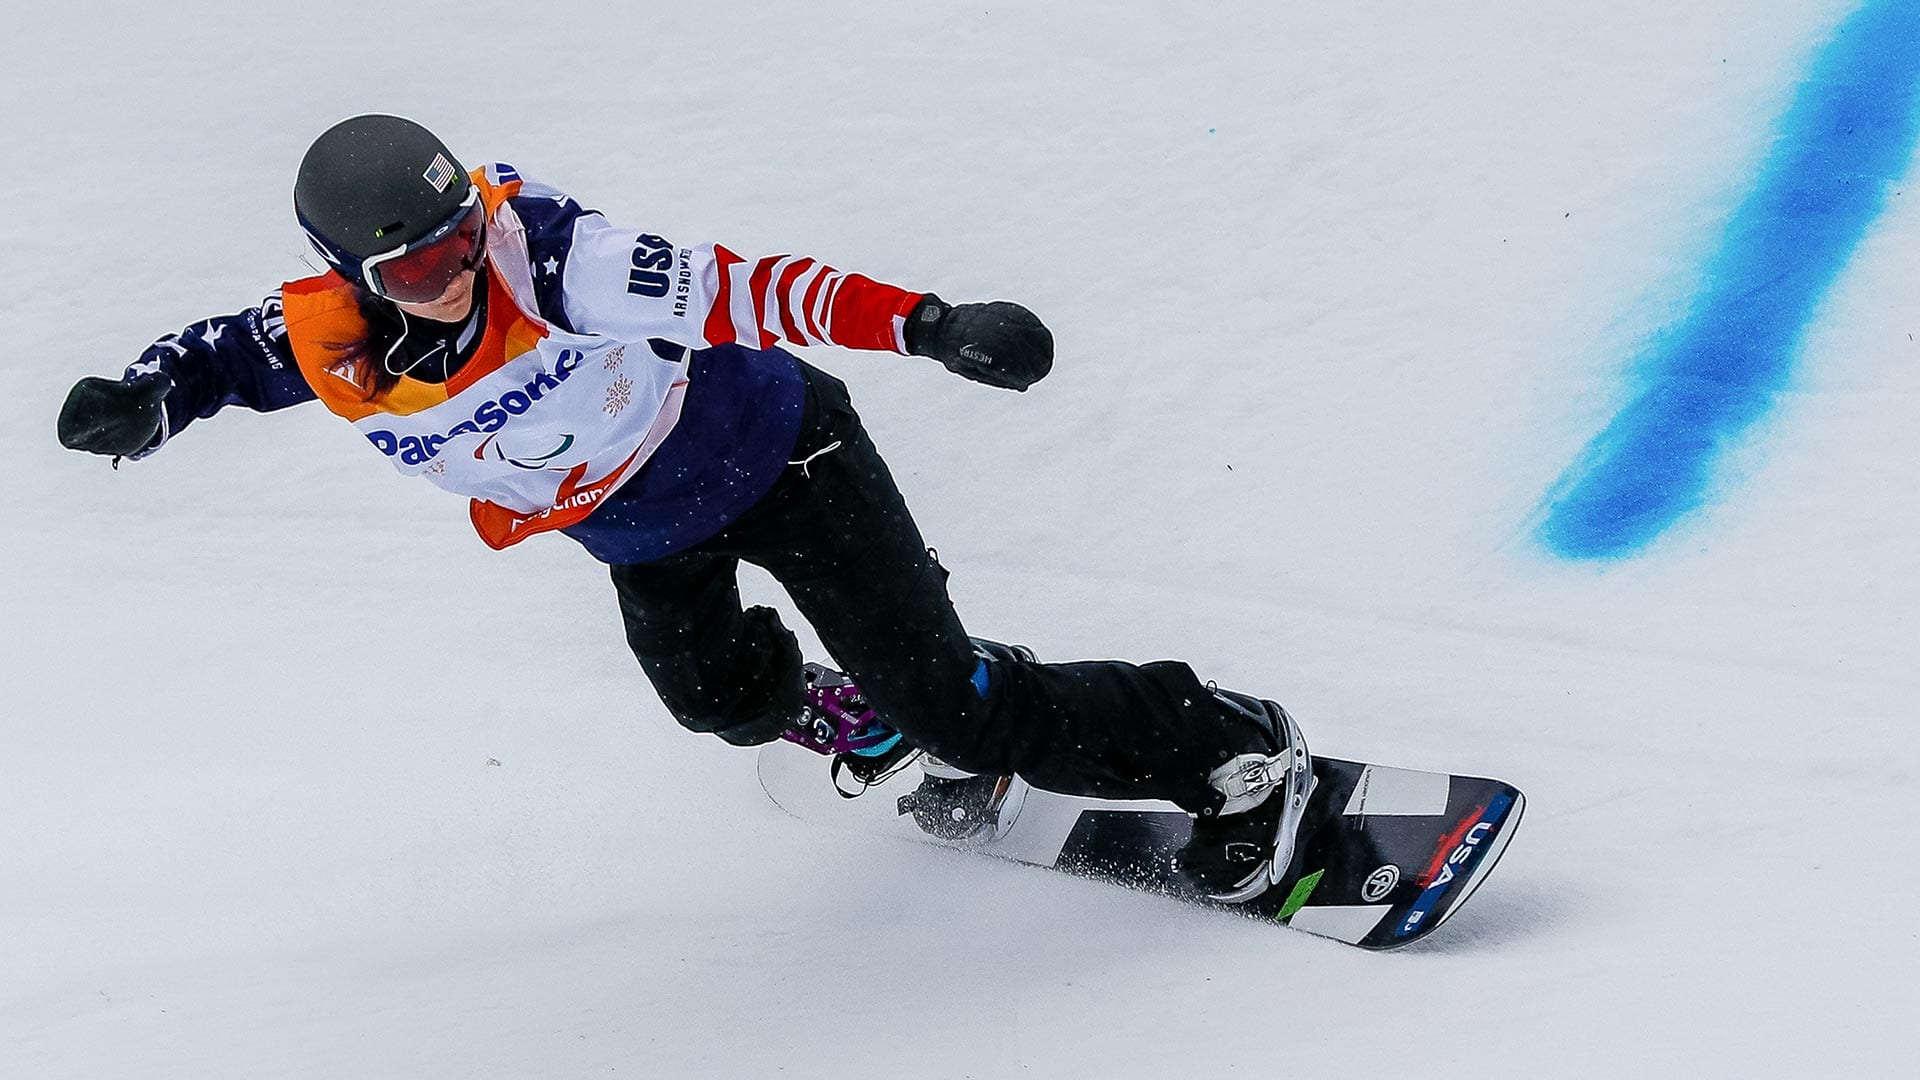 What you missed last night at the Paralympics: Snowboarder Brenna Huckaby is golden again - NBC Olympics